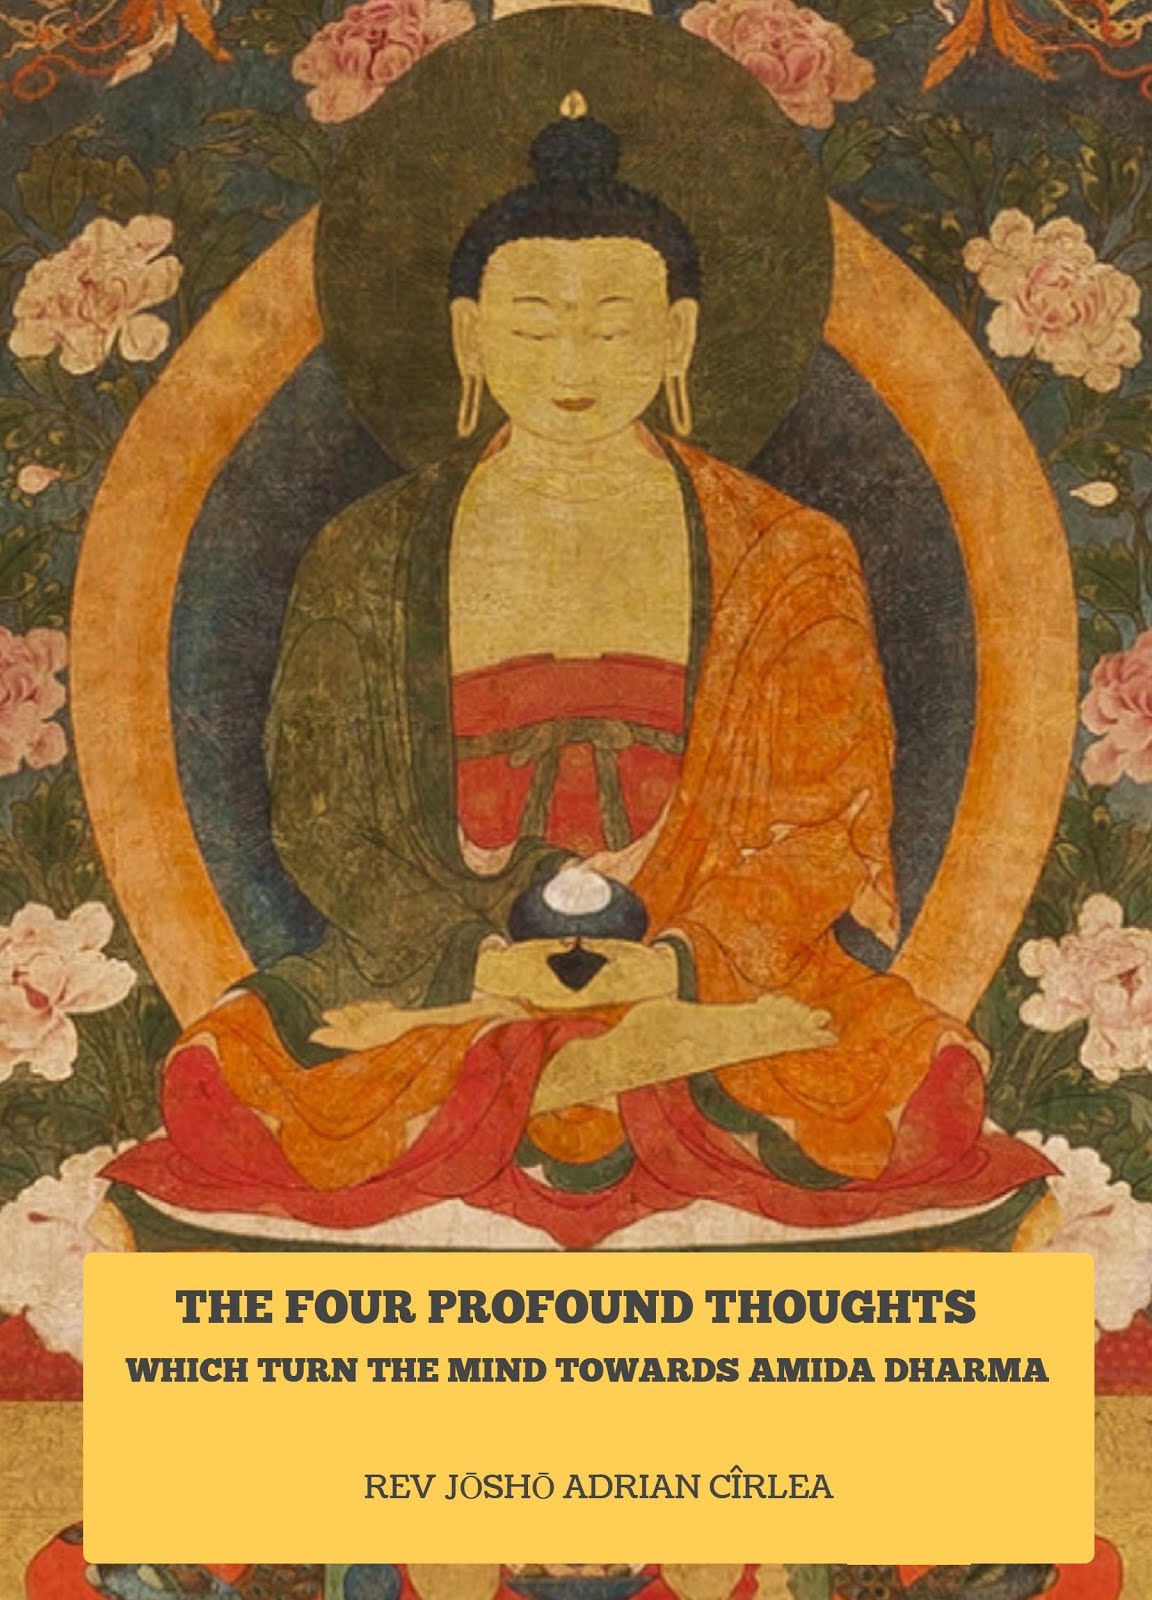 NEW! THE FOUR PROFOUND THOUGHTS WHICH TURN THE MIND TOWARDS AMIDA DHARMA